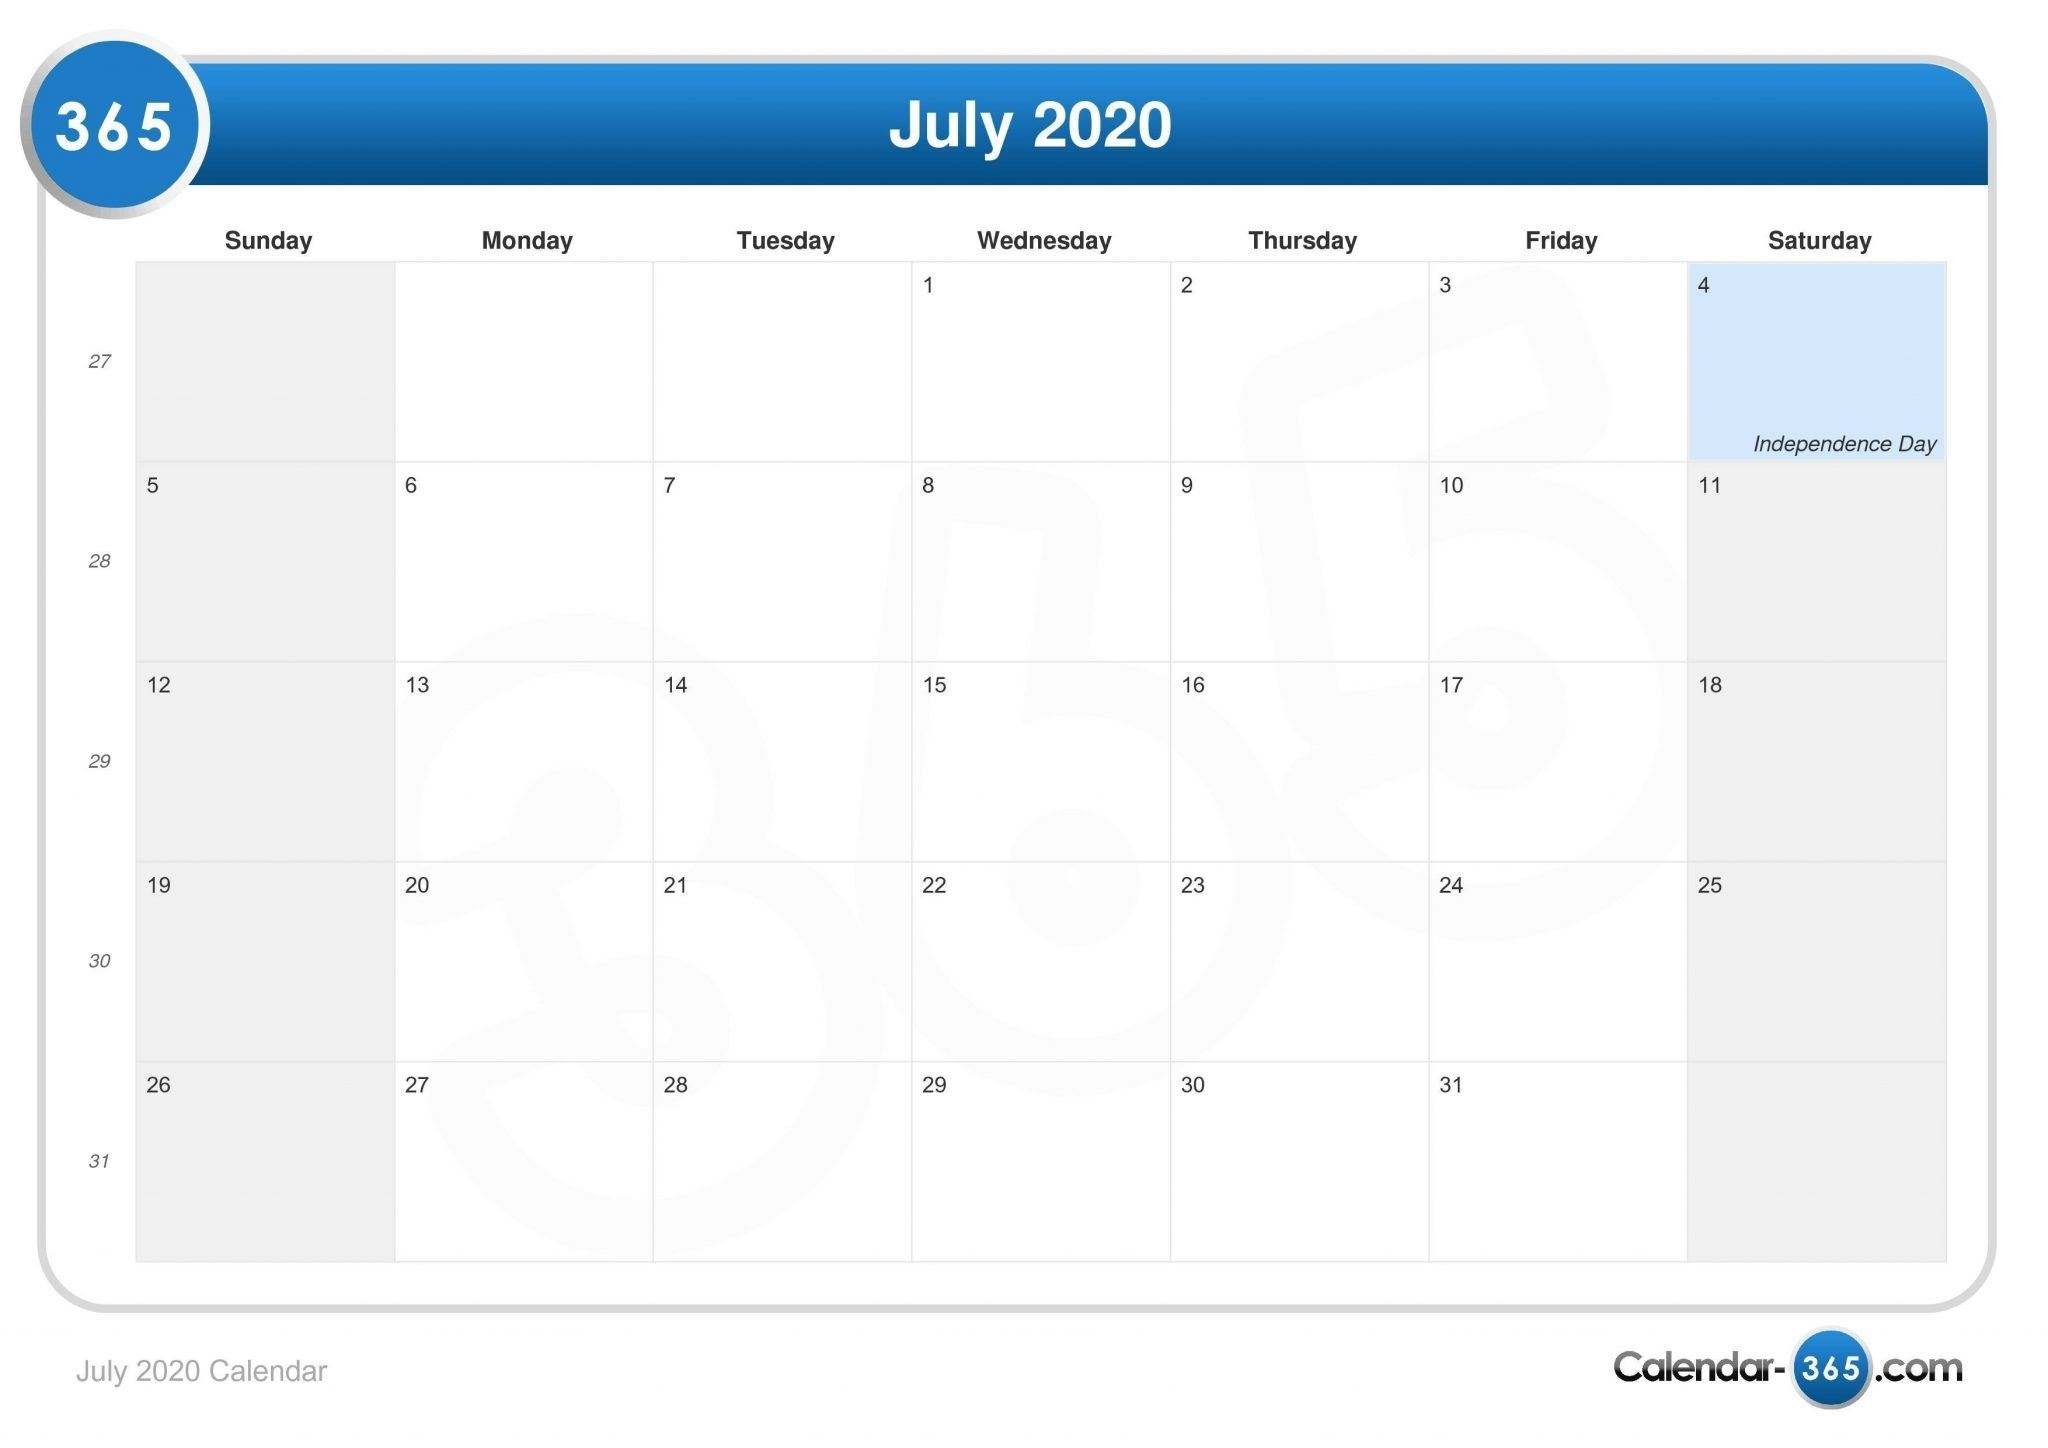 July 2020 Calendar With Holidays In Usa, Uk, Canada, India